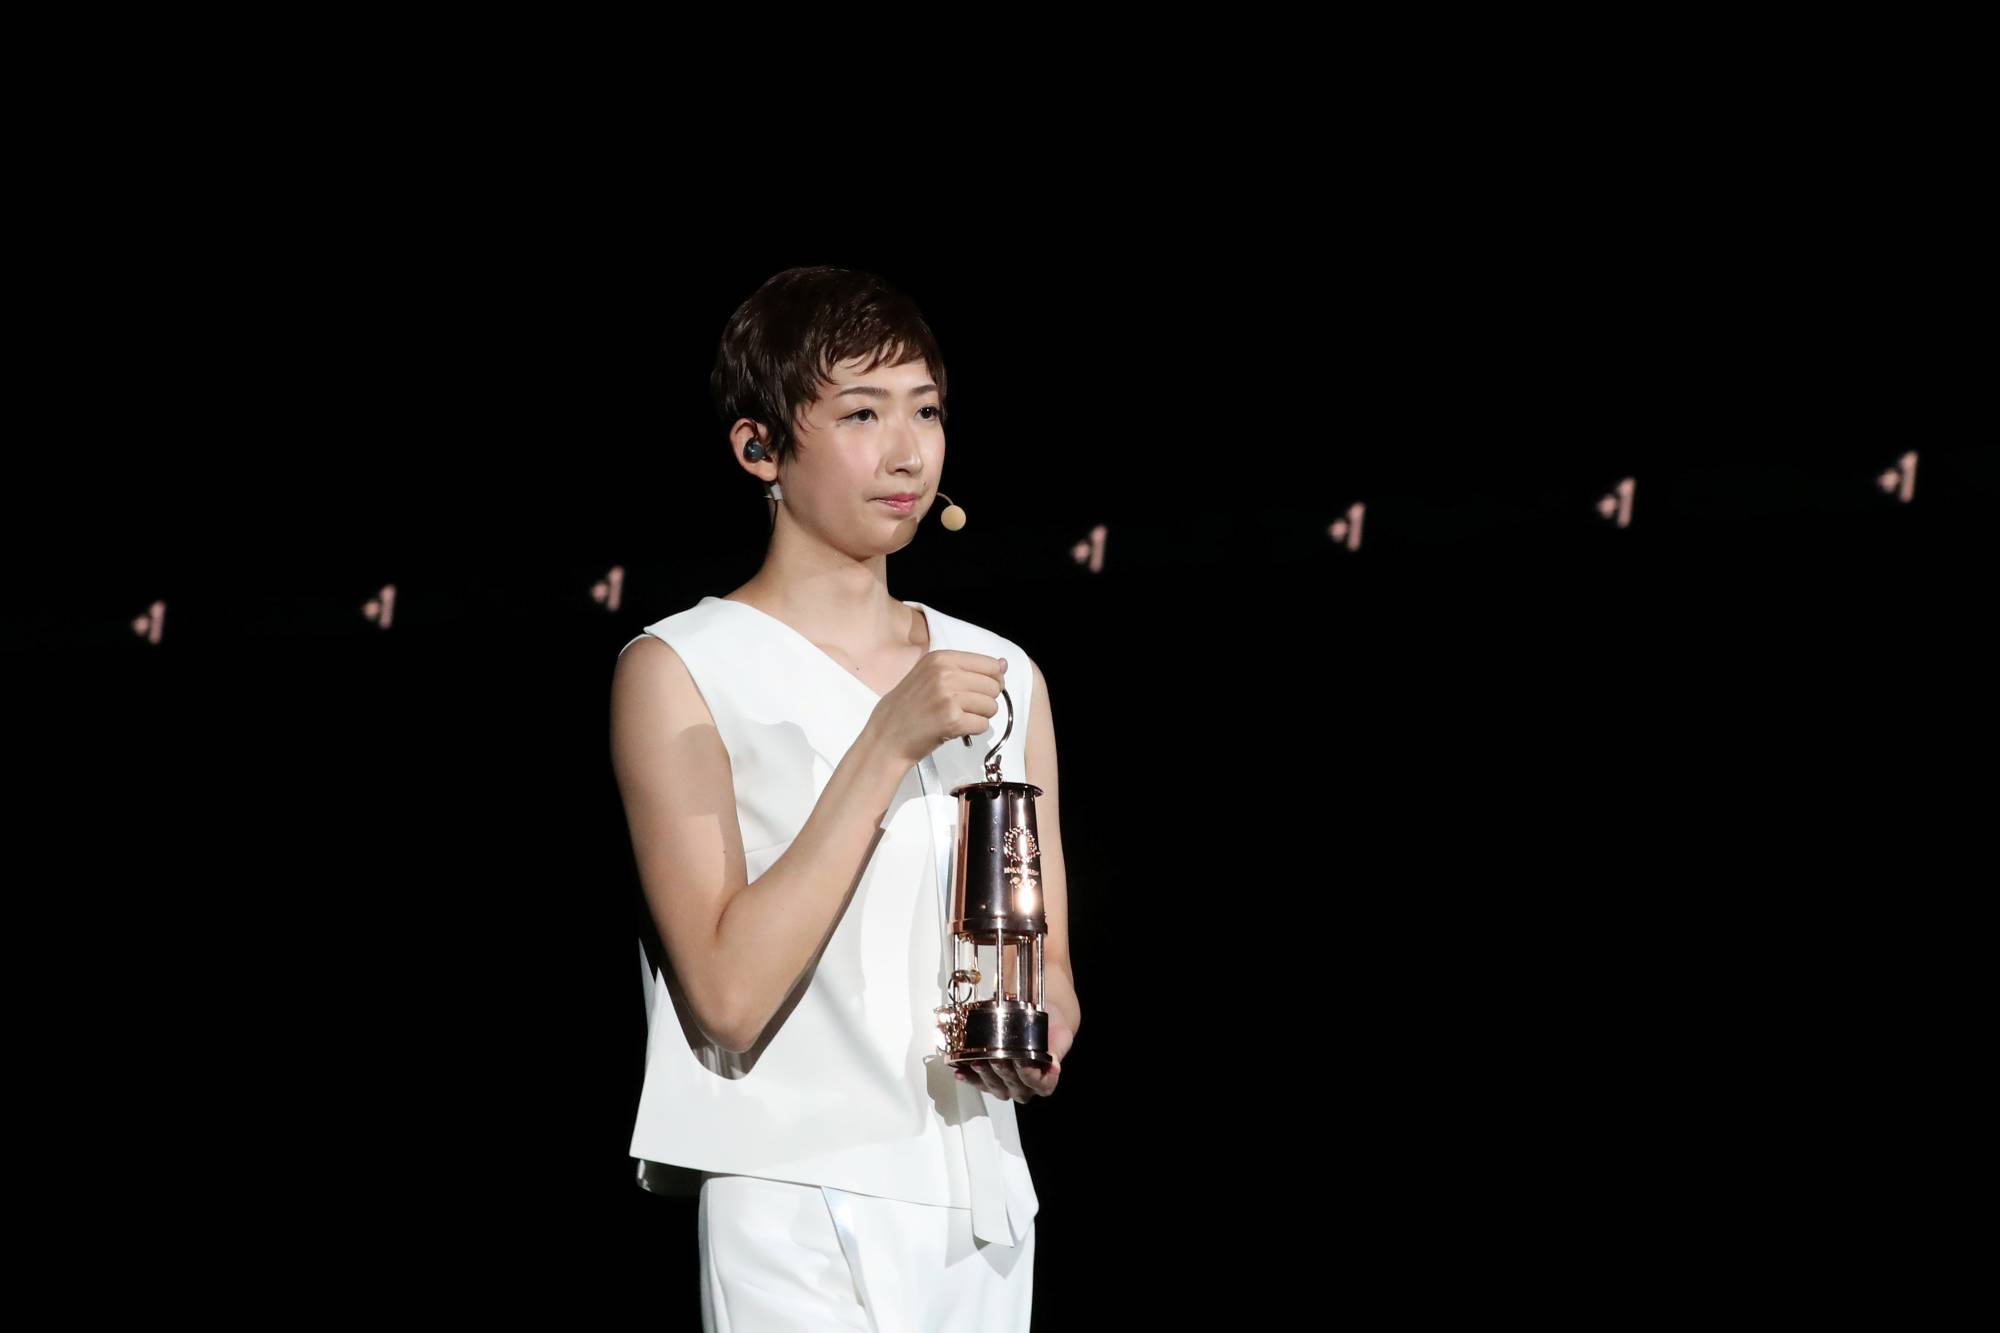 Rikako Ikee holds a lantern containing the Olympic flame during an event marking the one-year countdown to the postponed 2020 Tokyo Olympics on July 23 at Tokyo's National Stadium. | POOL / VIA REUTERS